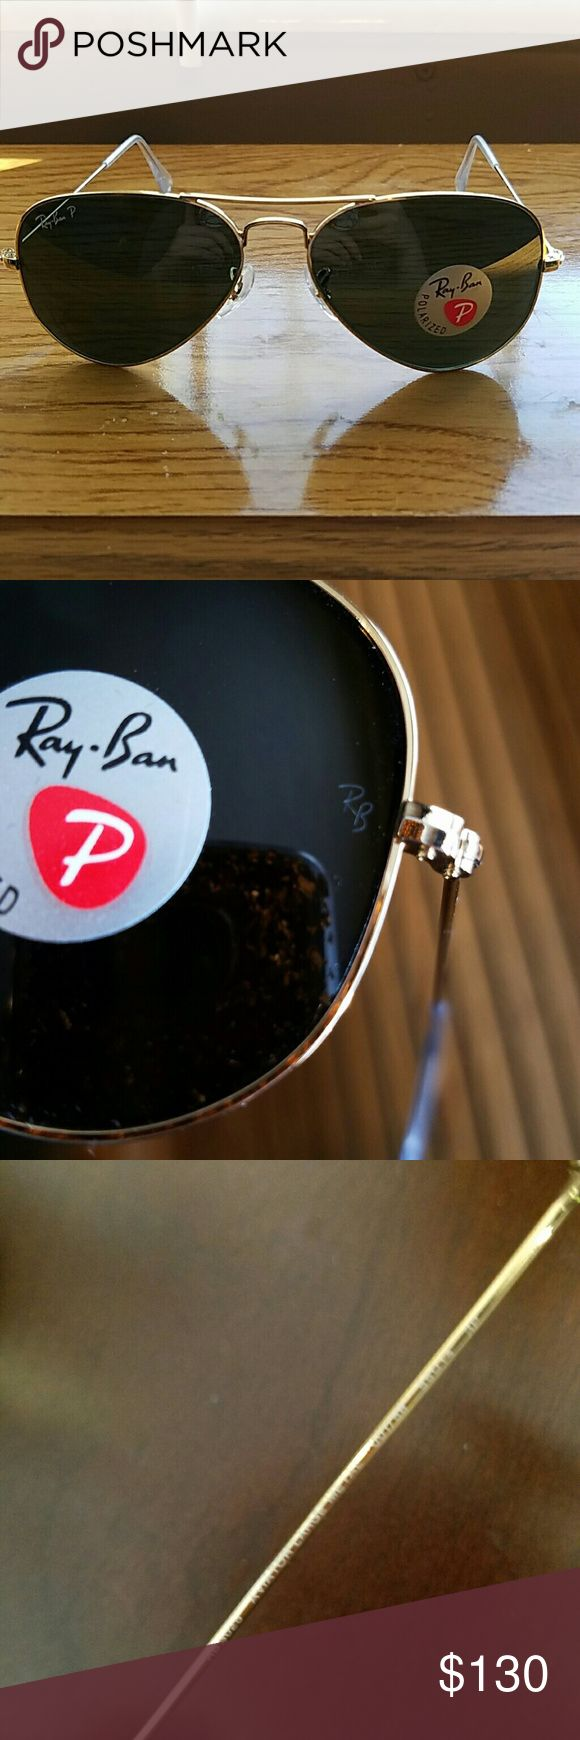 RayBan polarized sunglasses aviator gold frame RB3025 Large metal 001/58 55016 3P is what it says inside the frame. They are original Ray-Ban sunglasses, as you can see the RB on the side of the lenses.  This pair does not come with the original box. Frames only. NO TRADES Ray-Ban Accessories Sunglasses